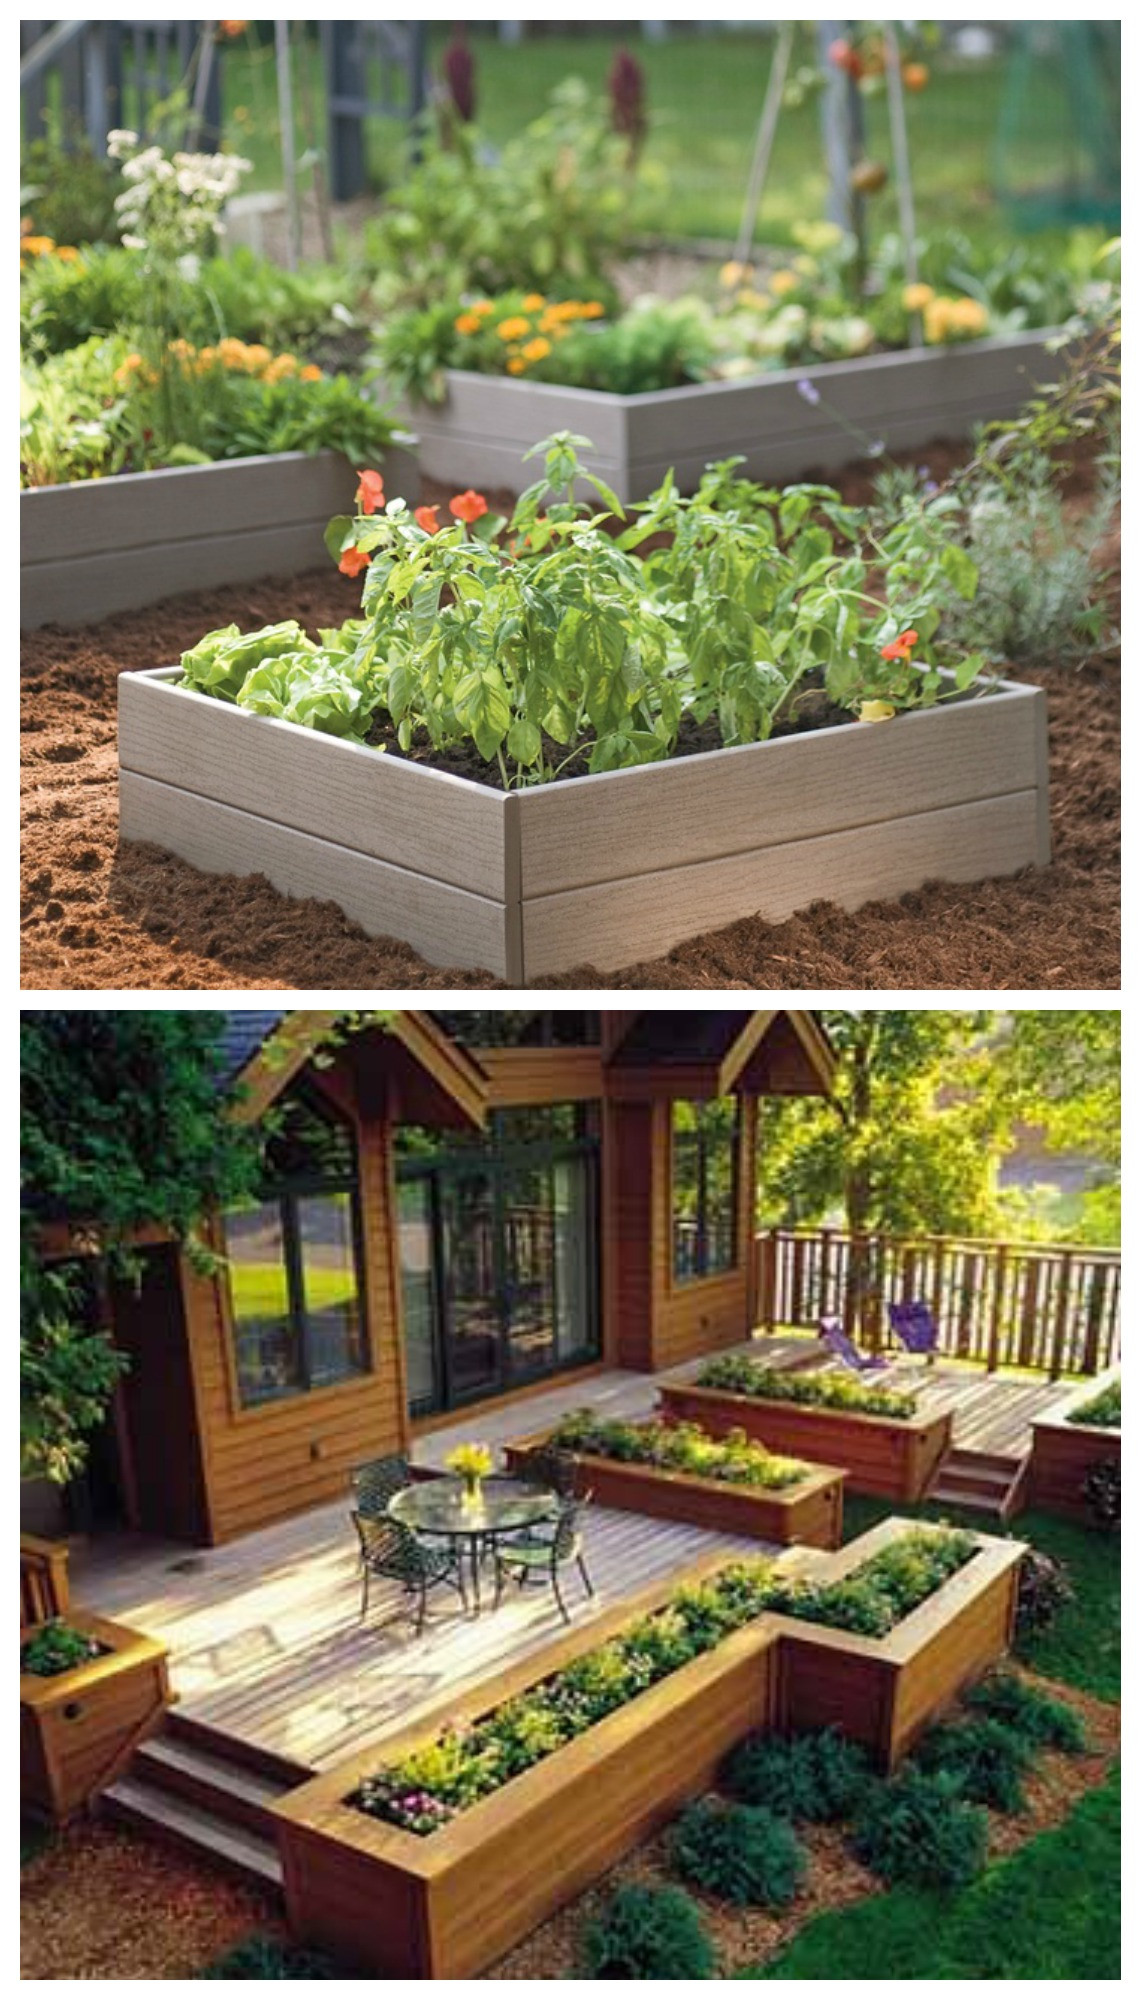 Best ideas about DIY Yard Projects . Save or Pin DIY Garden Projects For The Perfect Backyard Now.